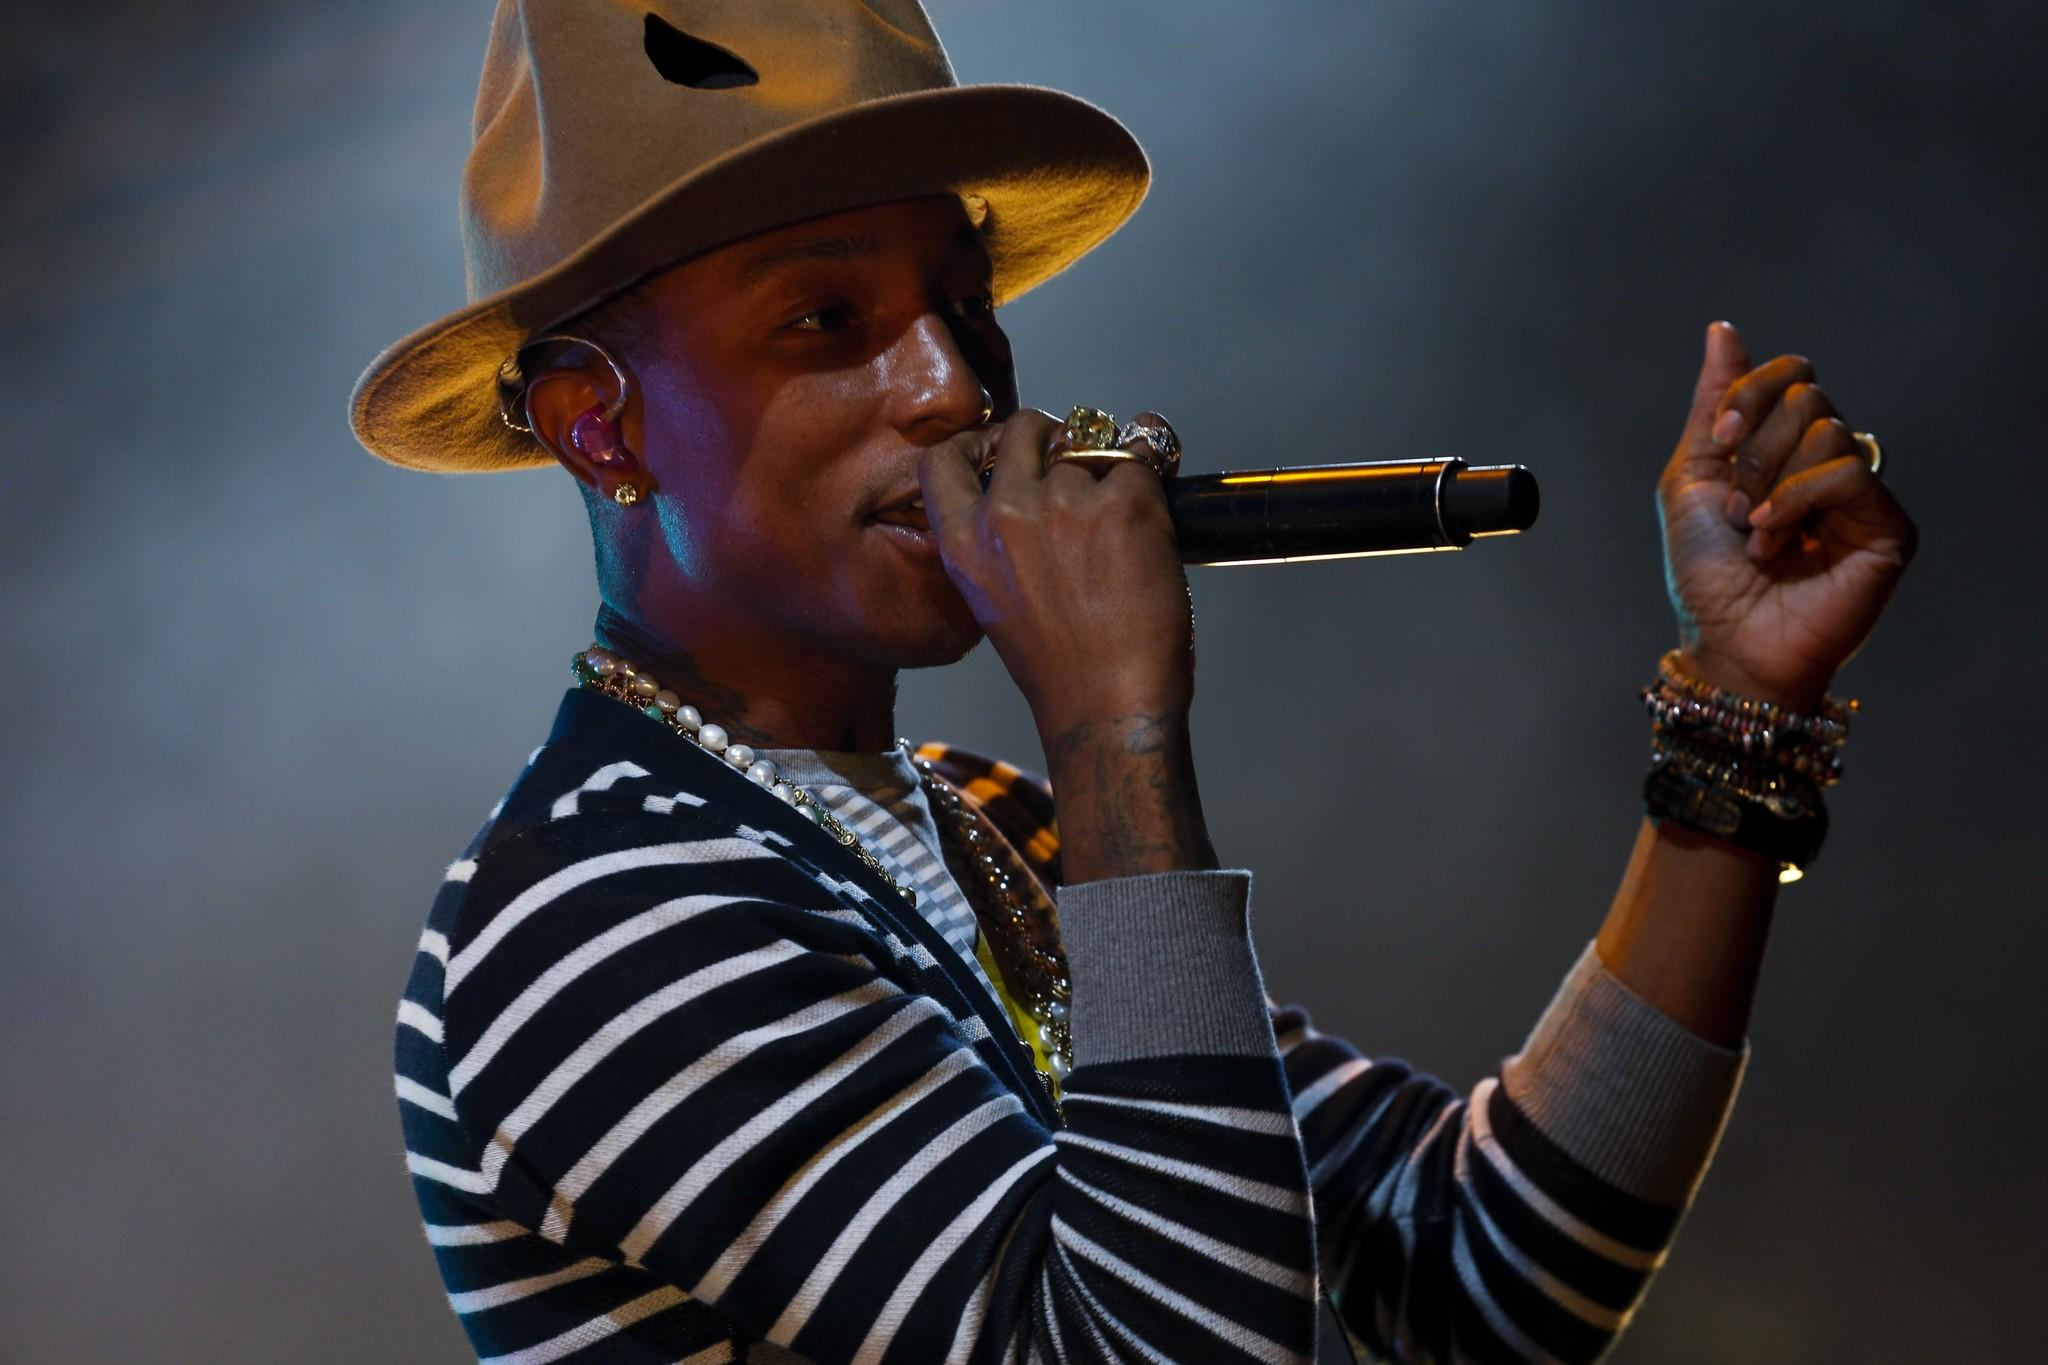 Pharrell Williams performing during the second weekend of the Coachella Valley Music and Arts Festival in Indio.